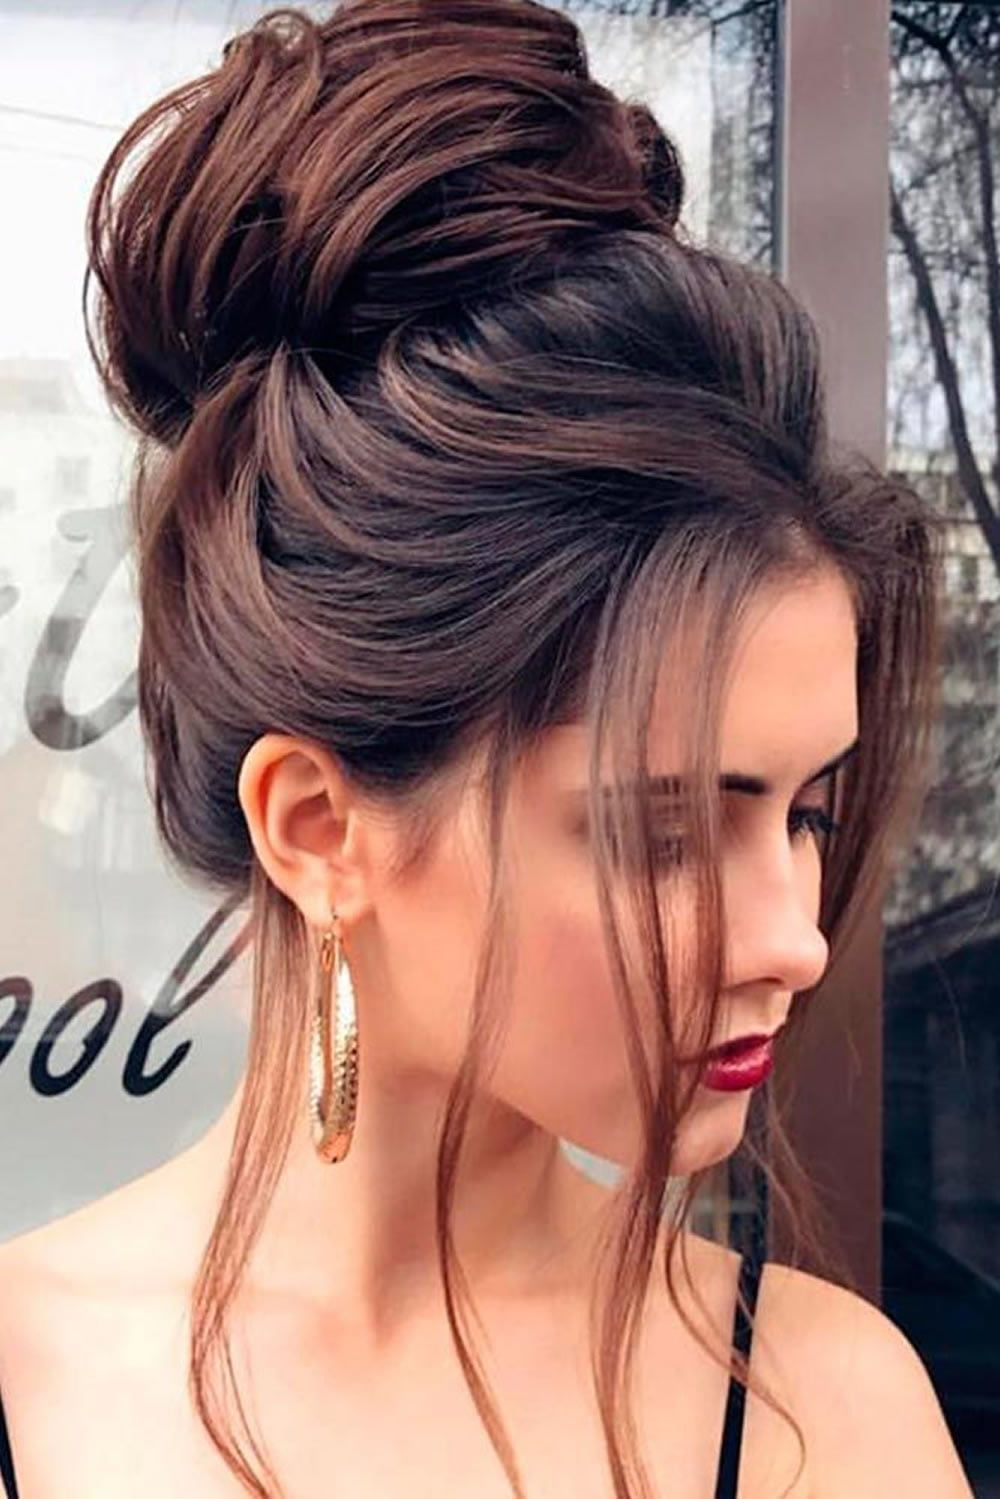 Hair Ideas For Christmas Party Part - 38: Christmas Party Hairstyles U0026 Haircuts For 2018 - Trendy Party Hair Ideas